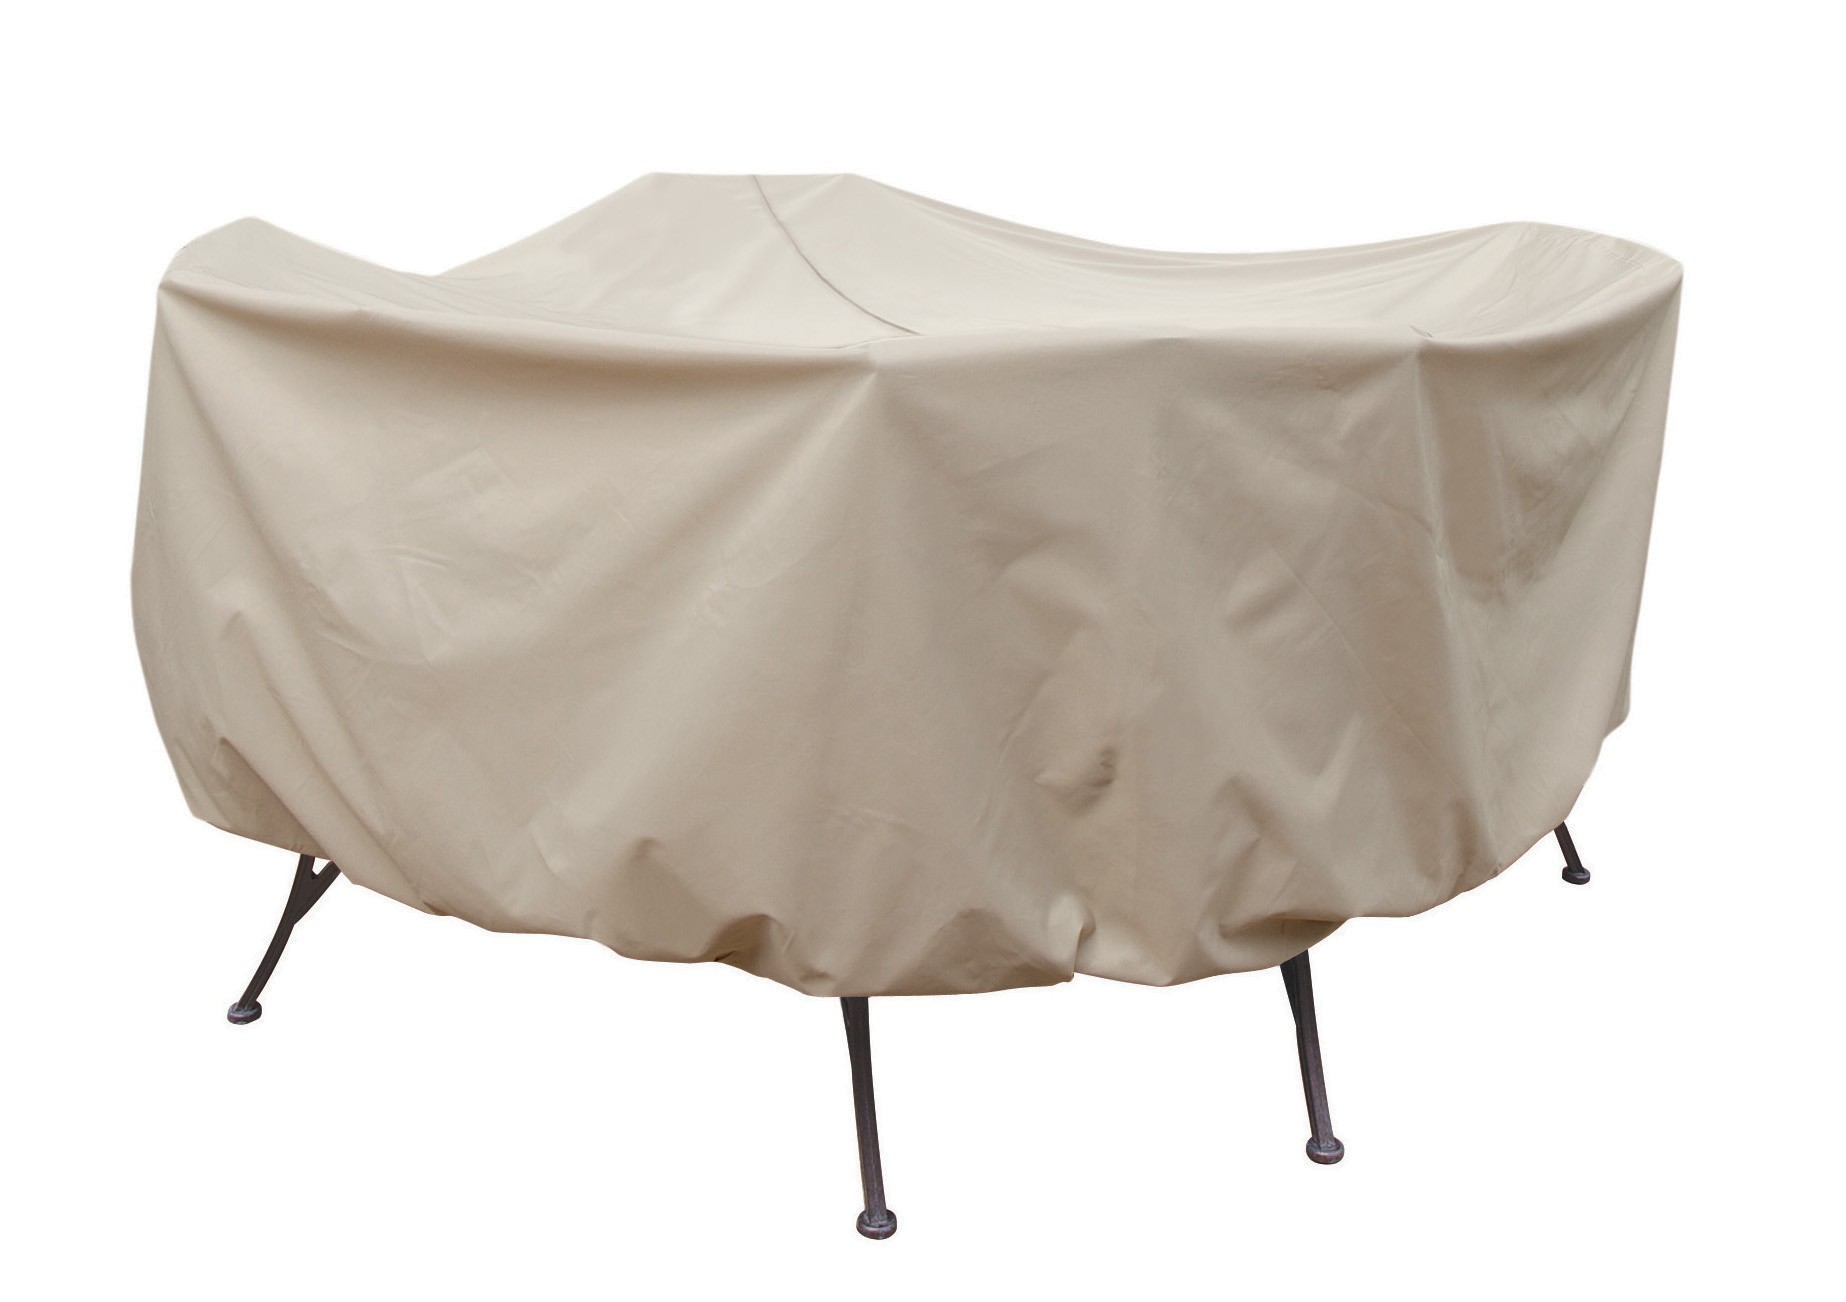 Protective Cover Fits 54 Round Table Chairs W Hole Hauser S